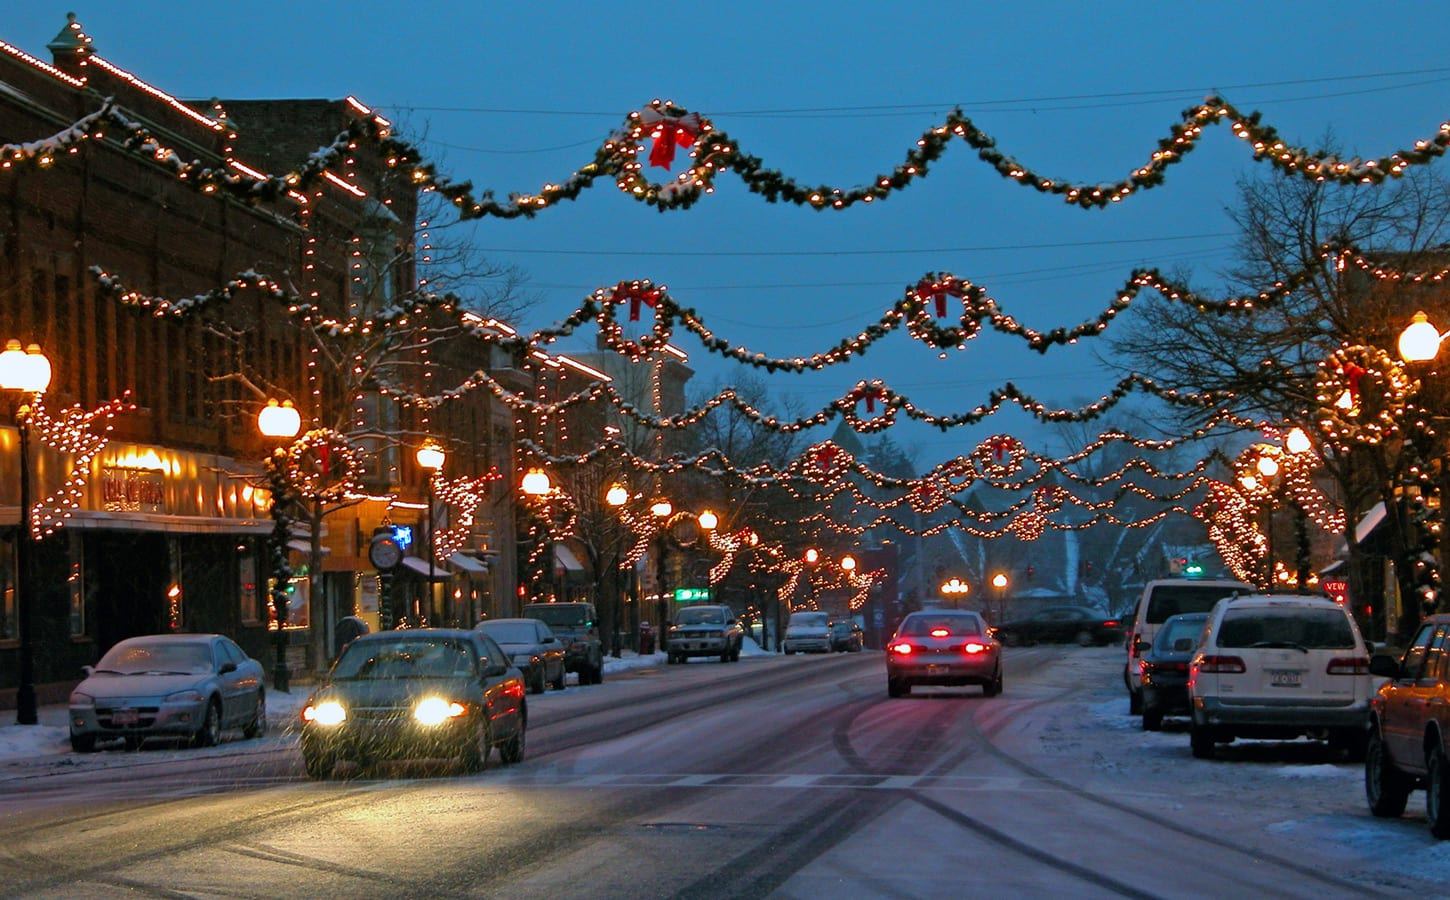 Christmas Events Upstate Ny 2020 10 Favorite Christmas Loving Towns In the U.S. | The Rockettes